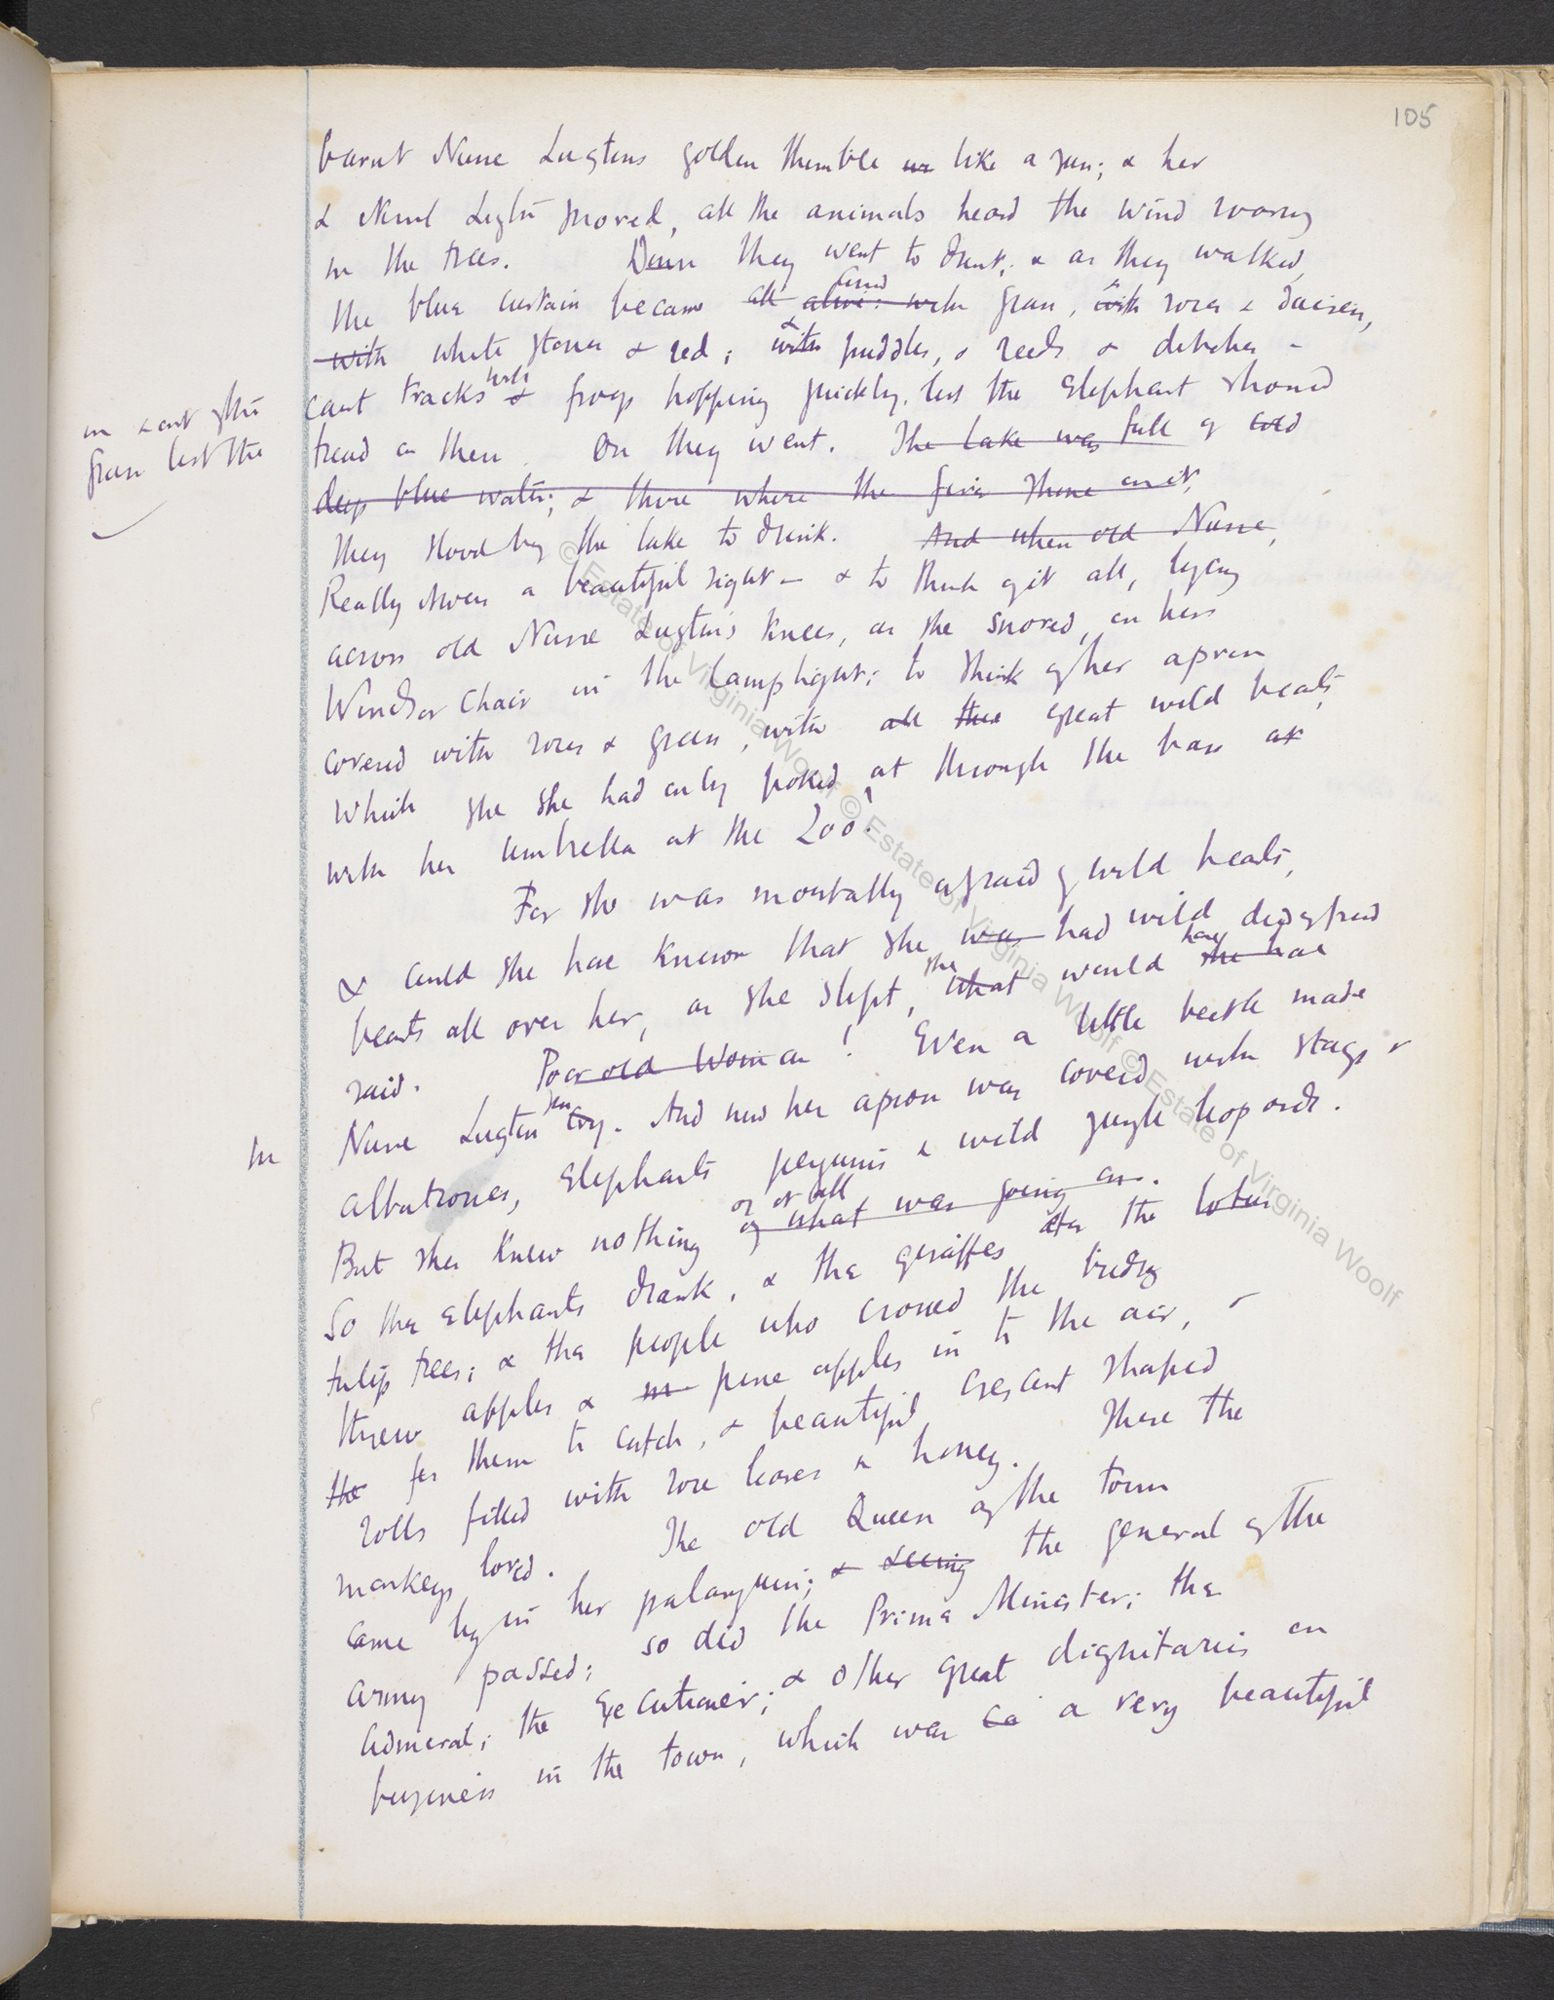 nurse lugton from virginia woolf s original manuscript of mrs nurse lugton from virginia woolf s original manuscript of mrs dalloway 2 of 3